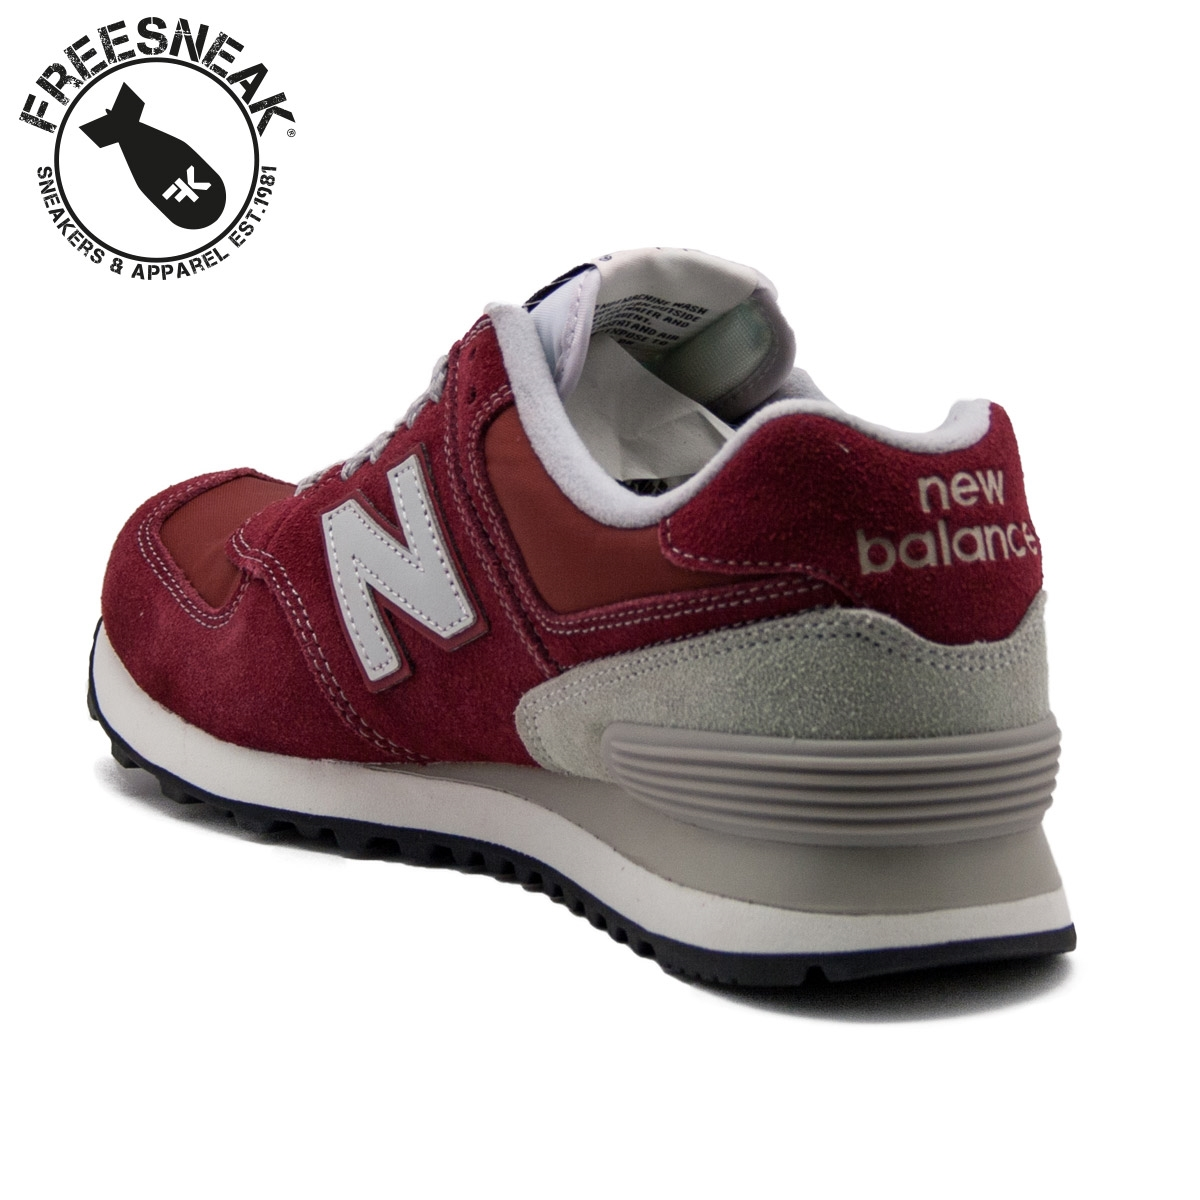 new balance 574 bordeaux 38